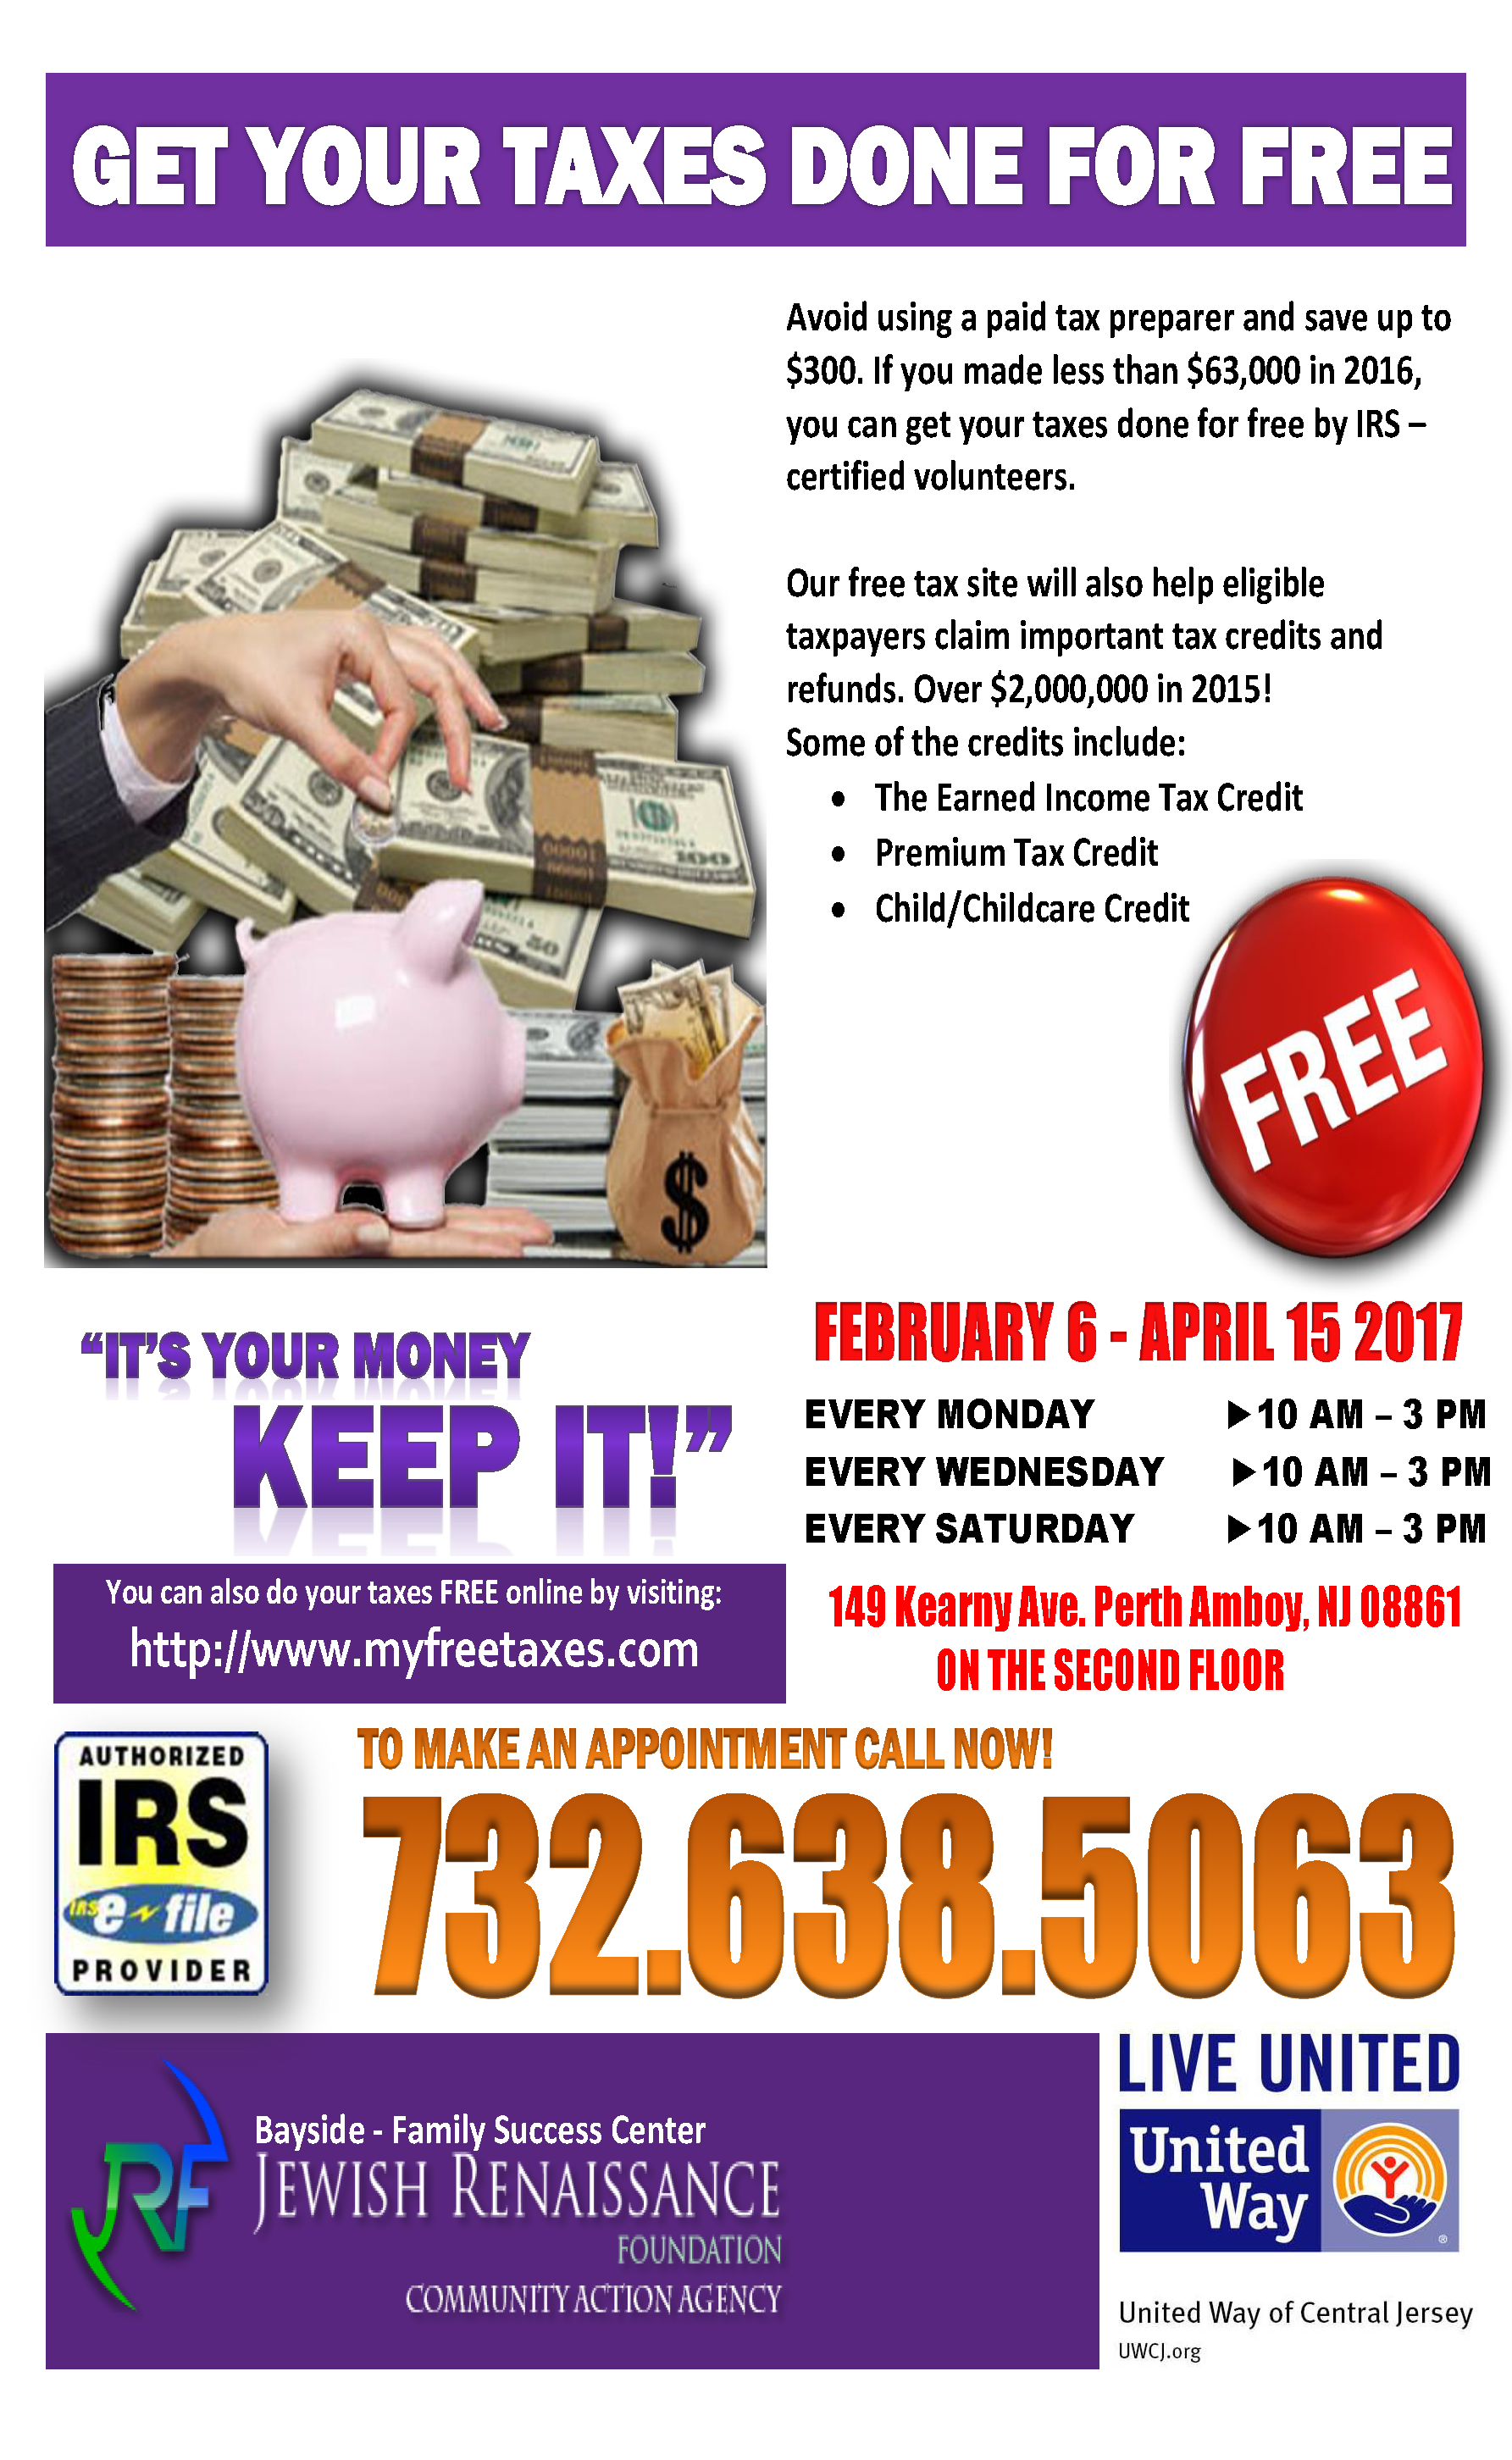 Get Your Taxes Done for Free